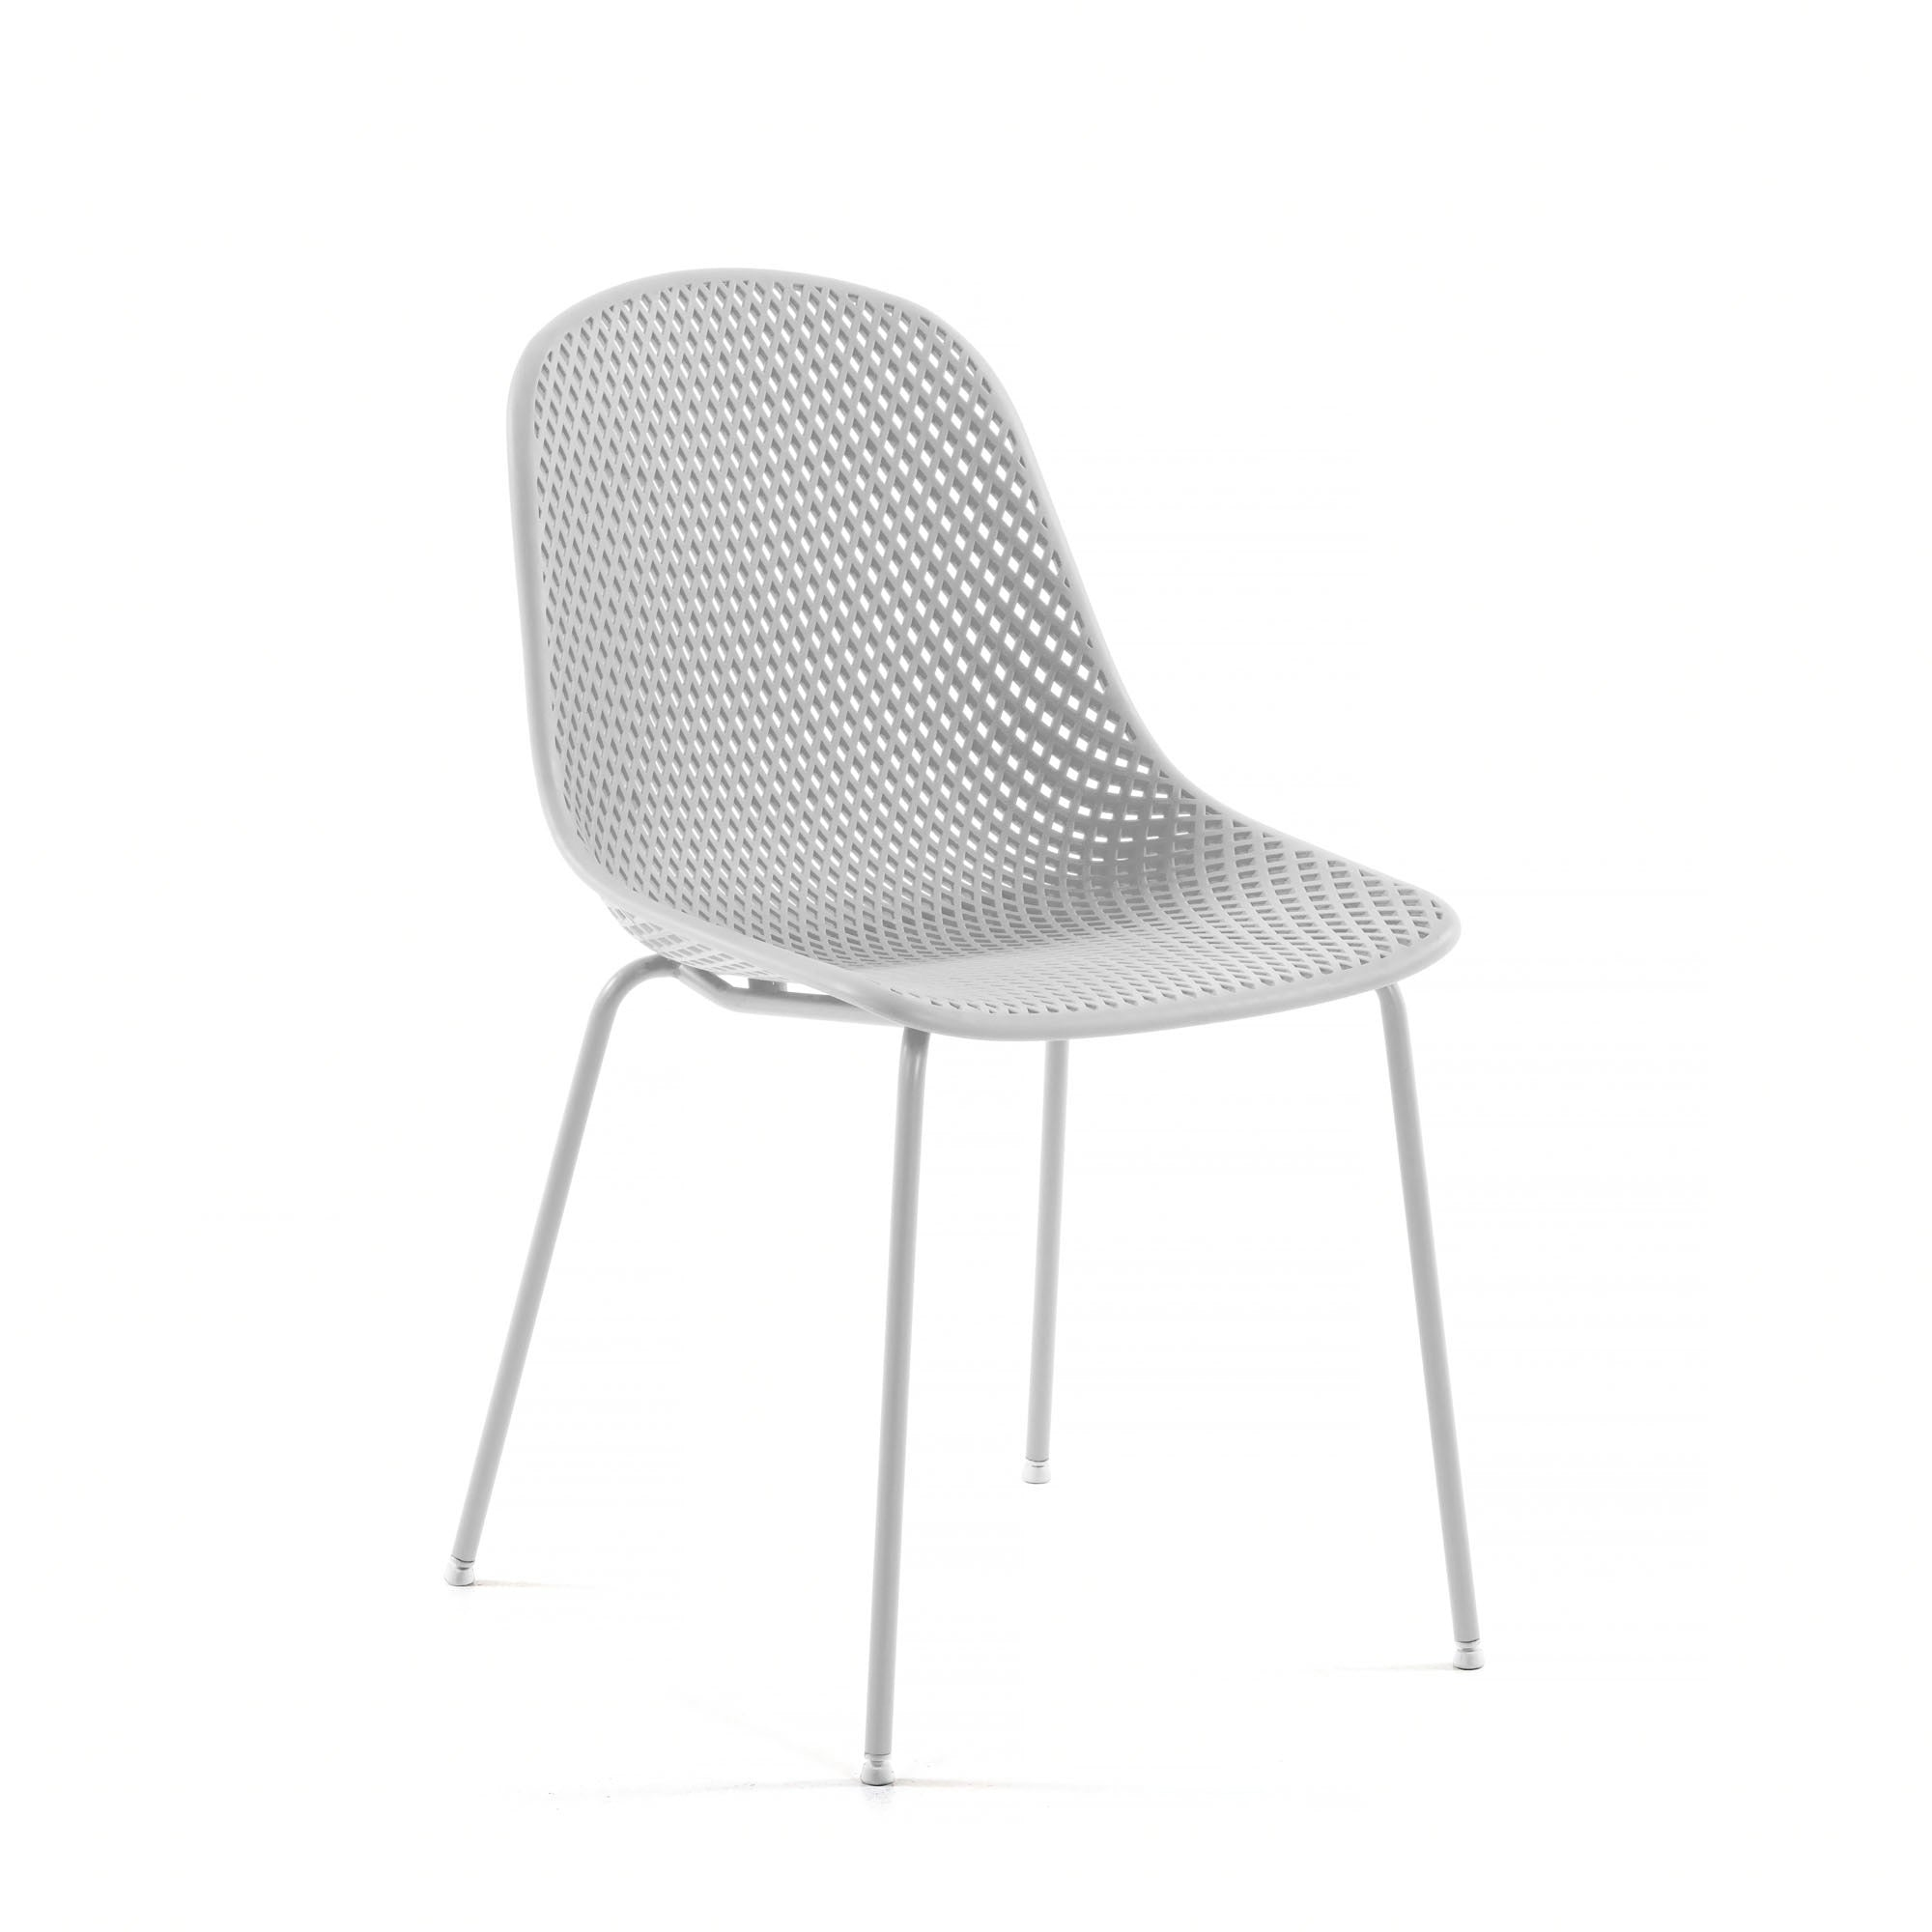 Luino Outdoor White Chair, Chair - Home-Buy Interiors